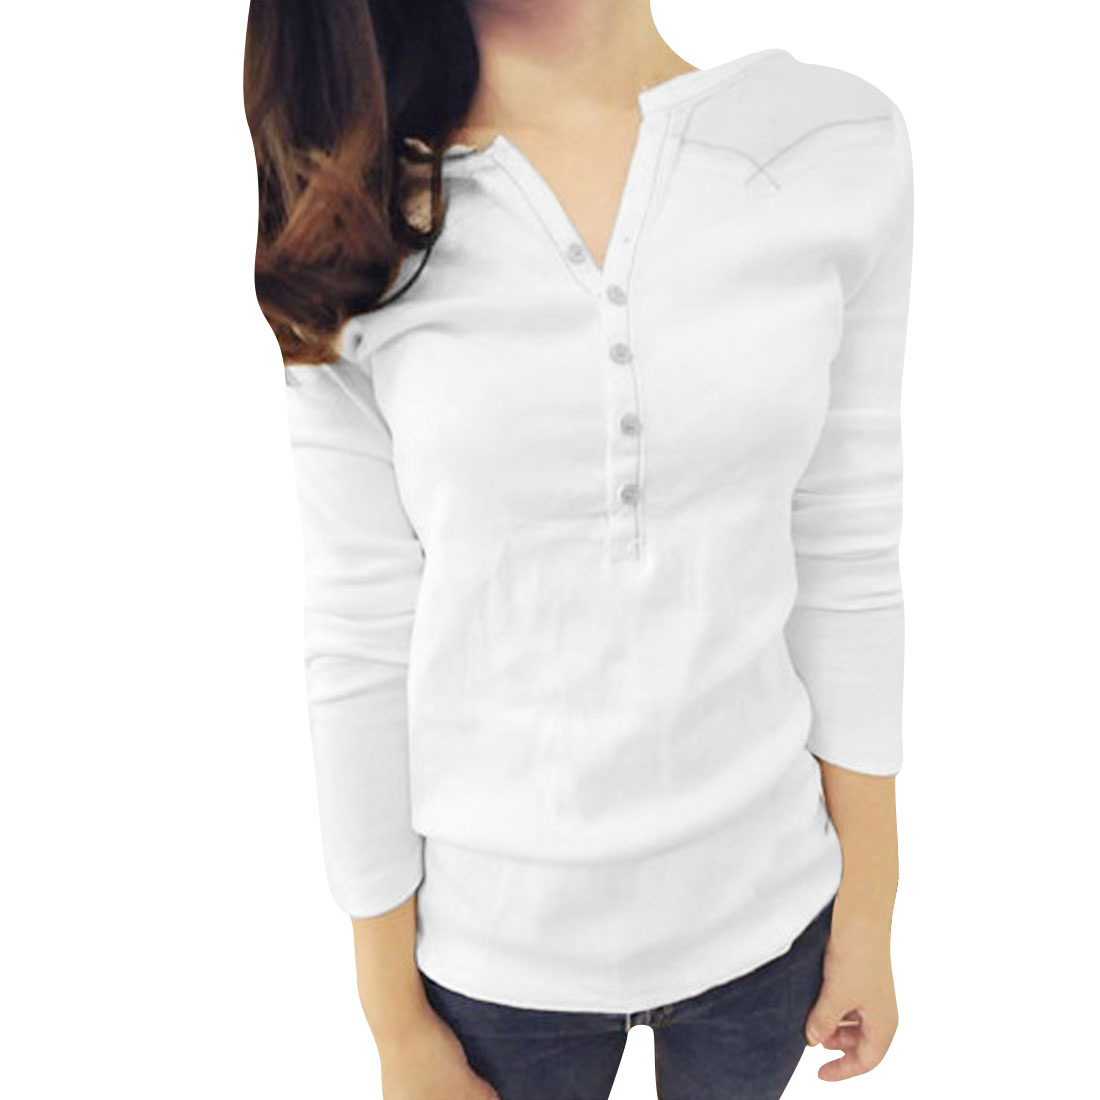 Women White V Neck Button Up Pullover Spring Panel Top Shirt XS